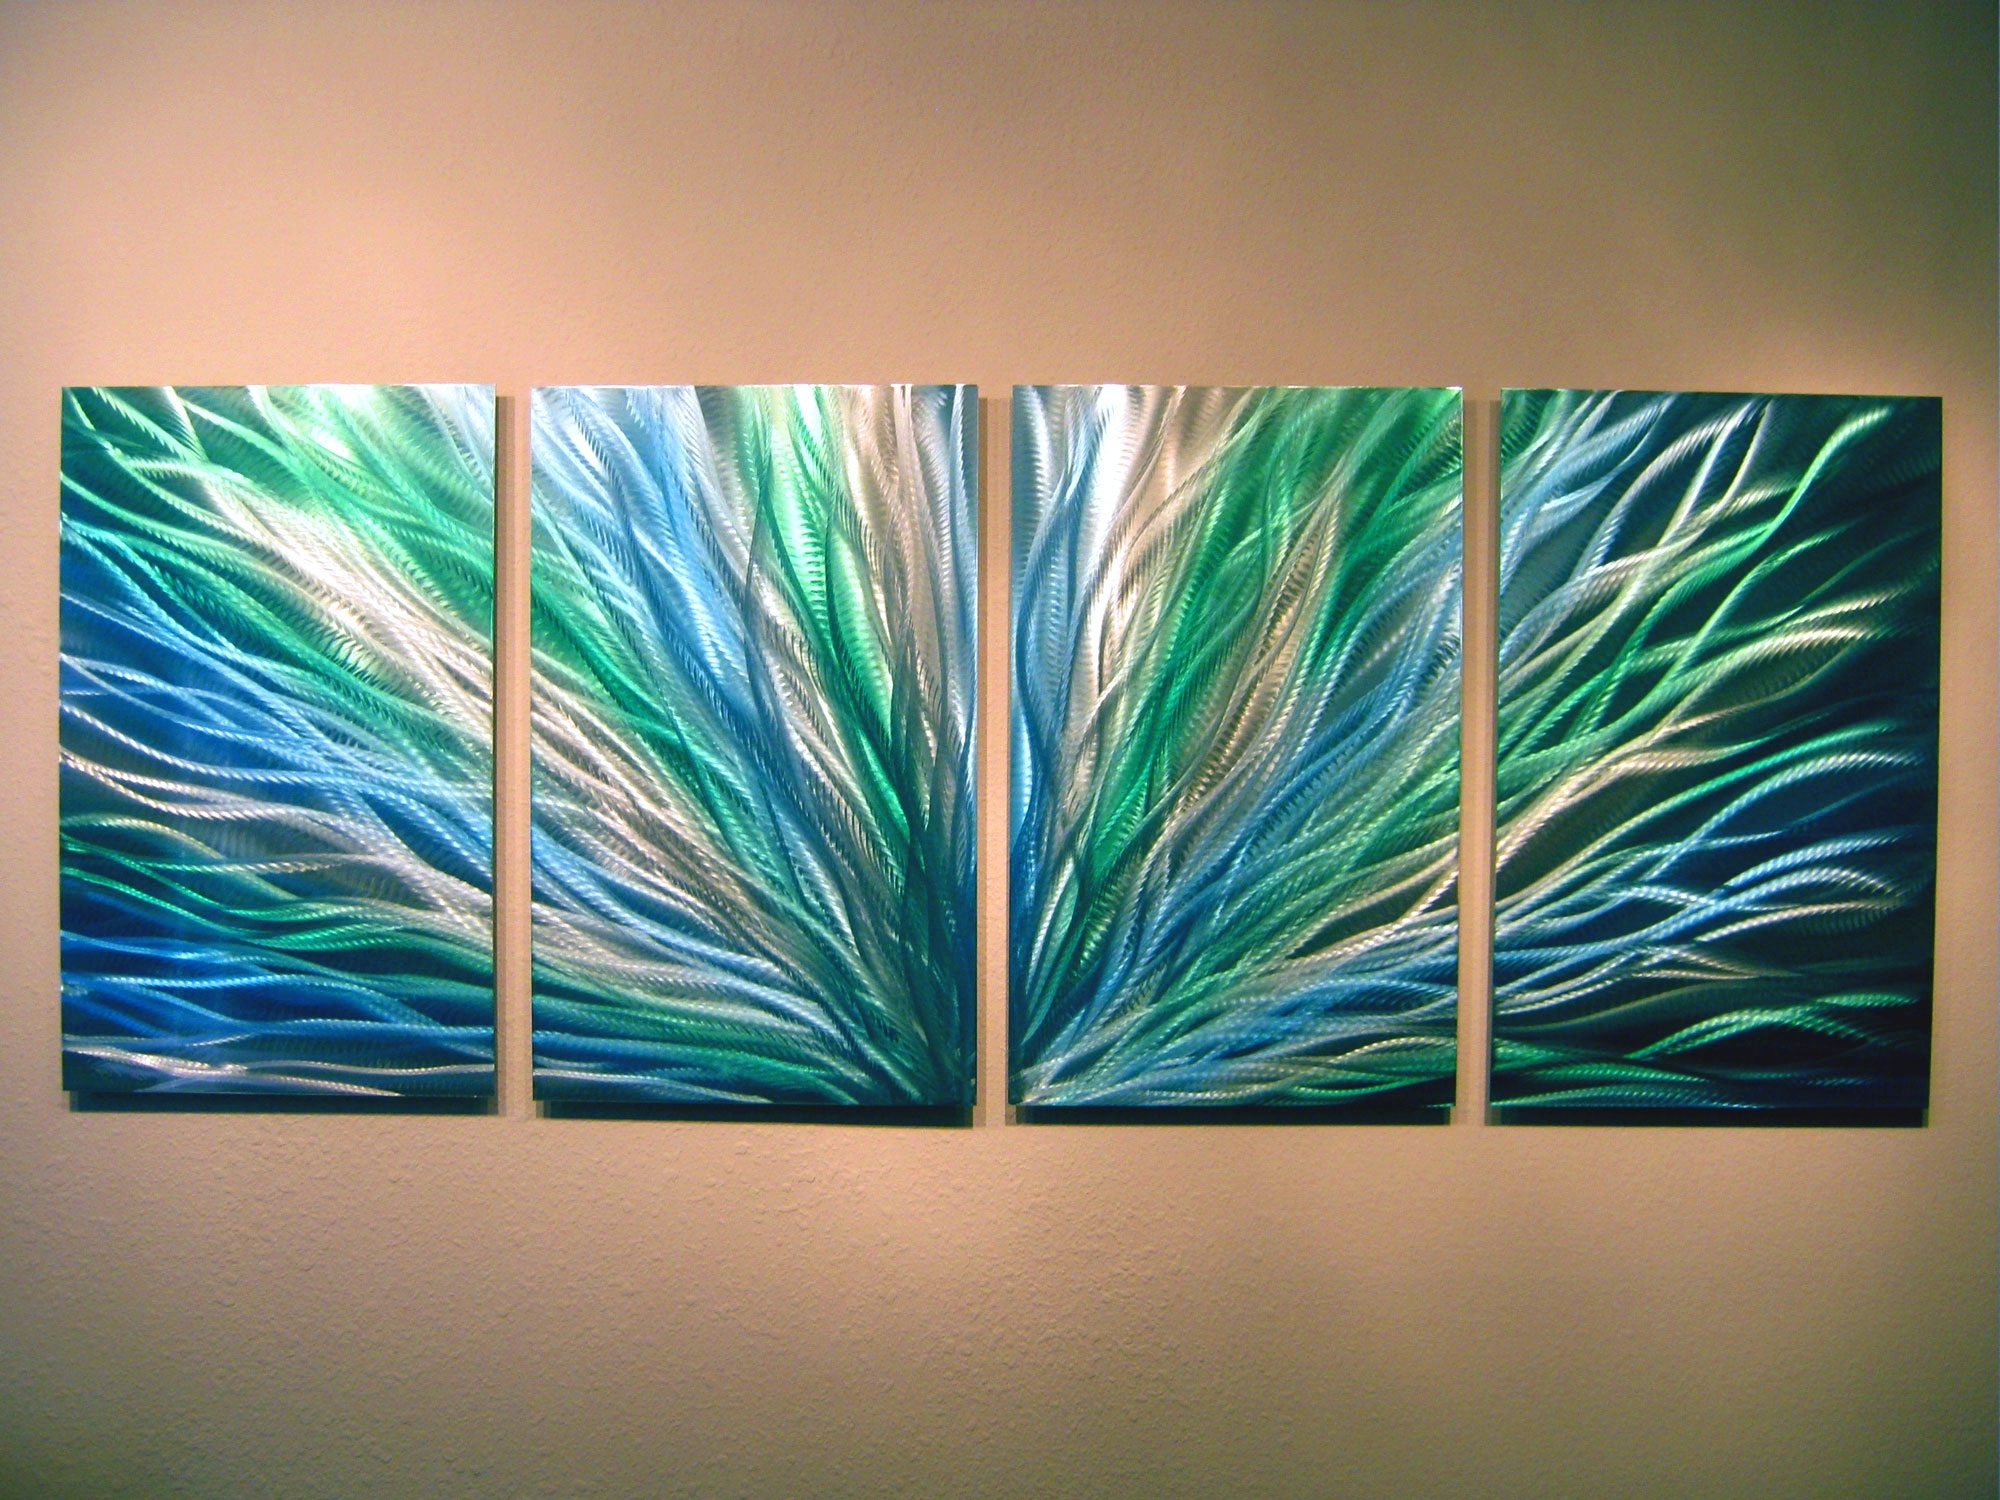 Most Recent Contemporary Wall Art Throughout Radiance Blue Green  Abstract Metal Wall Art Contemporary Modern (View 8 of 15)